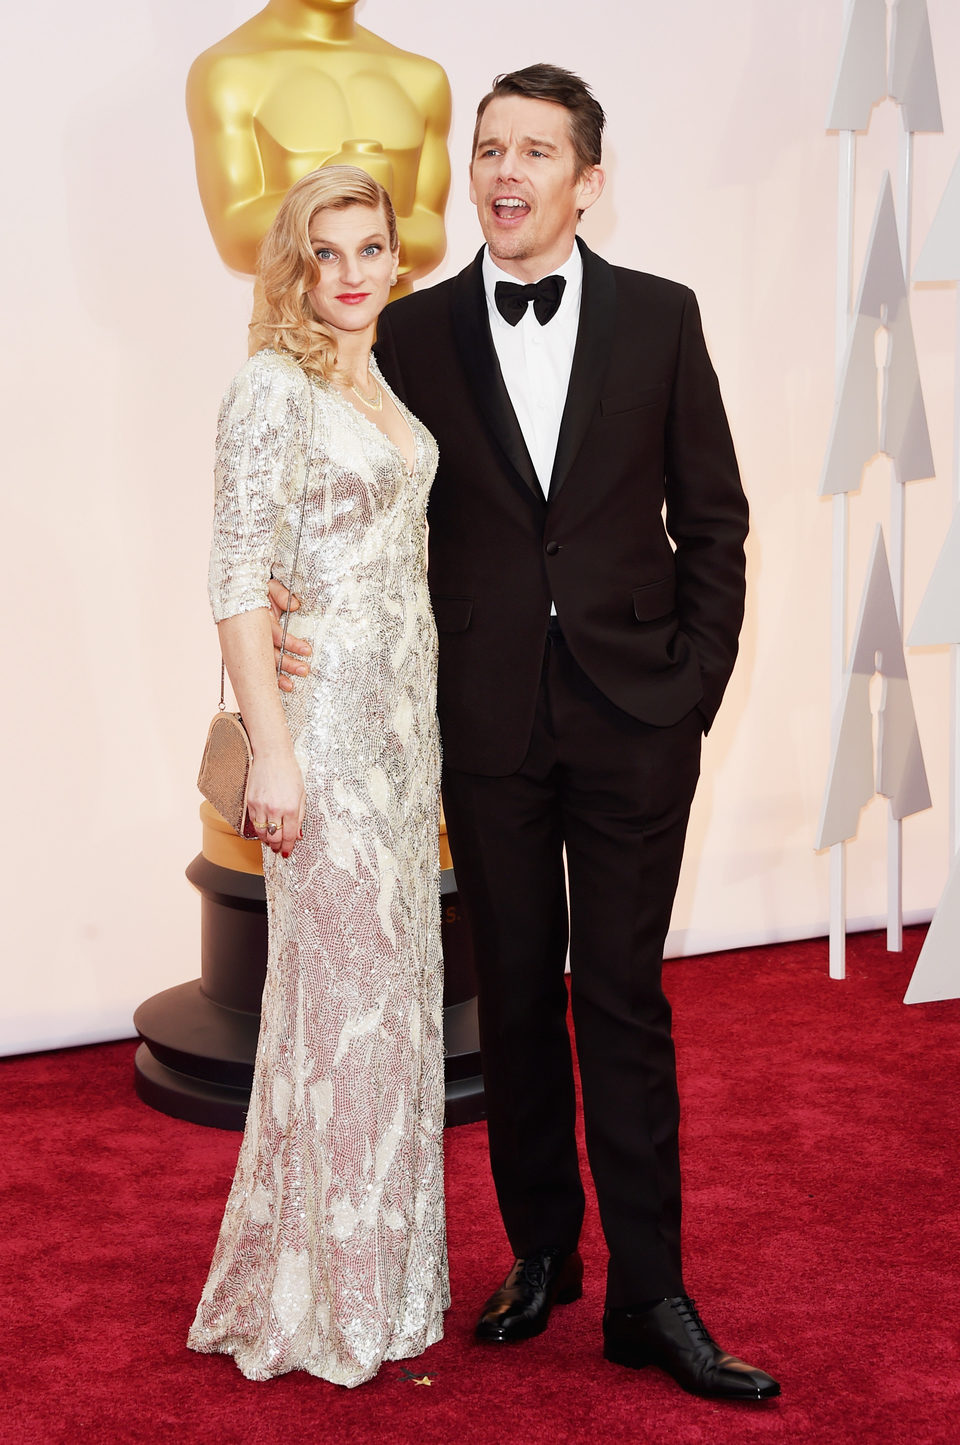 Ethan Hawke next to her wife Ryan Hawke at the Oscars Awards 2015 red carpet